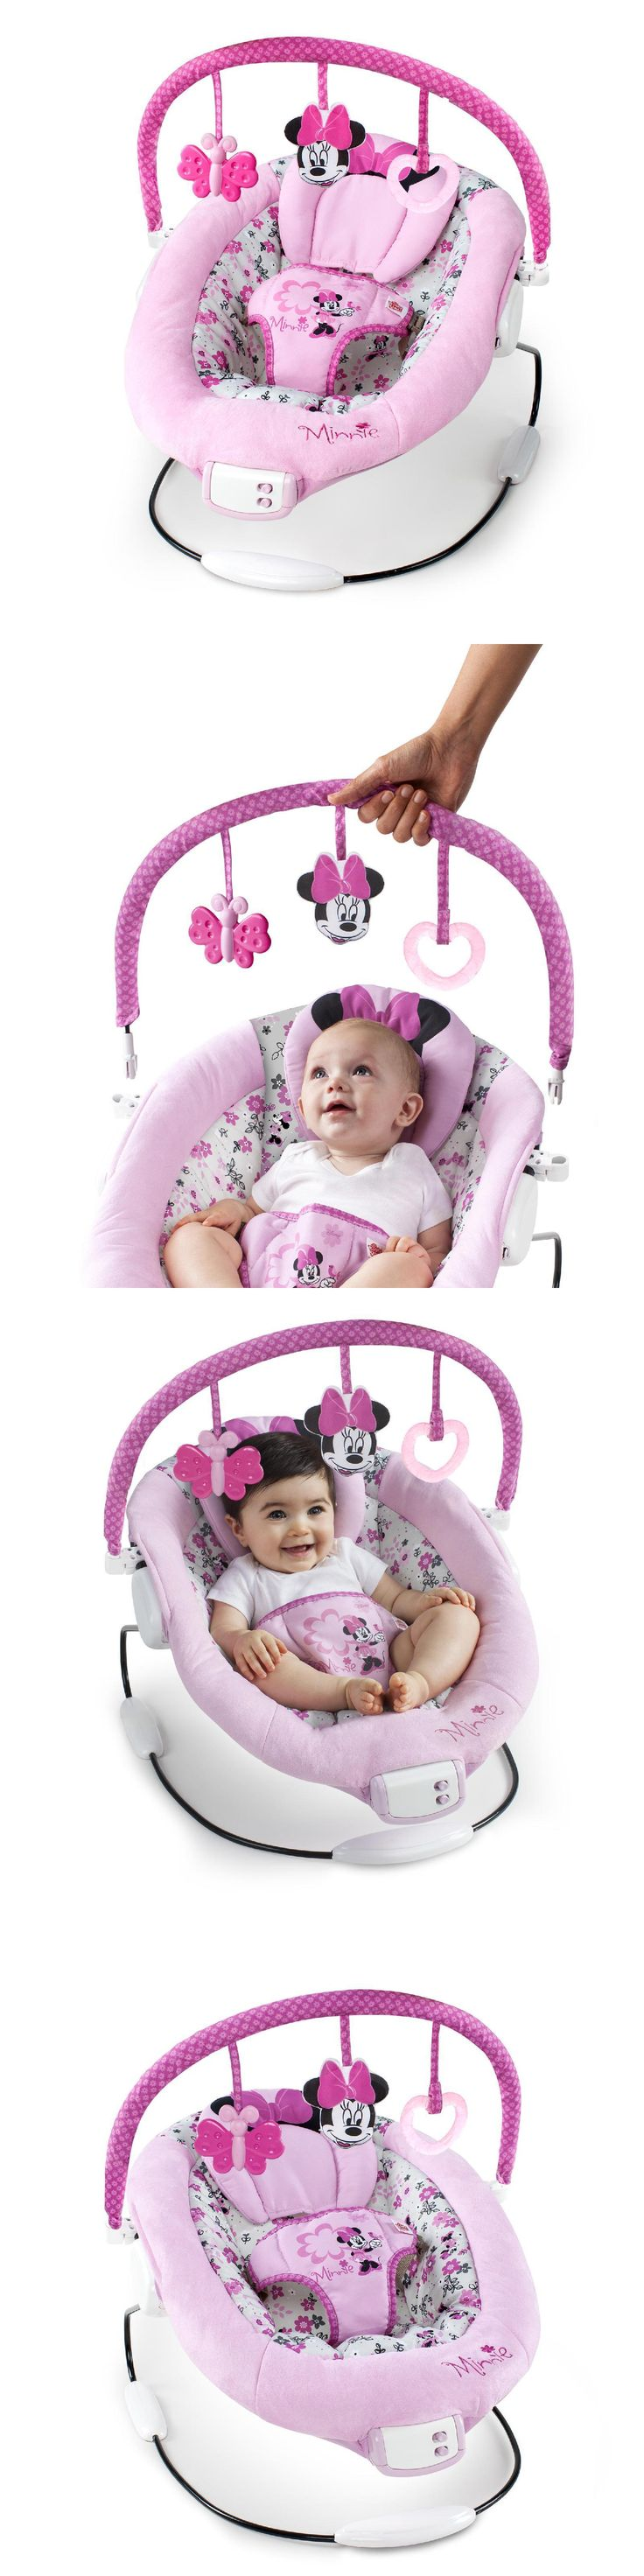 Baby Swings 2990: Baby Bouncer Swing Chair Infant Portable Toddler Rocker -> BUY IT NOW ONLY: $54.98 on eBay!